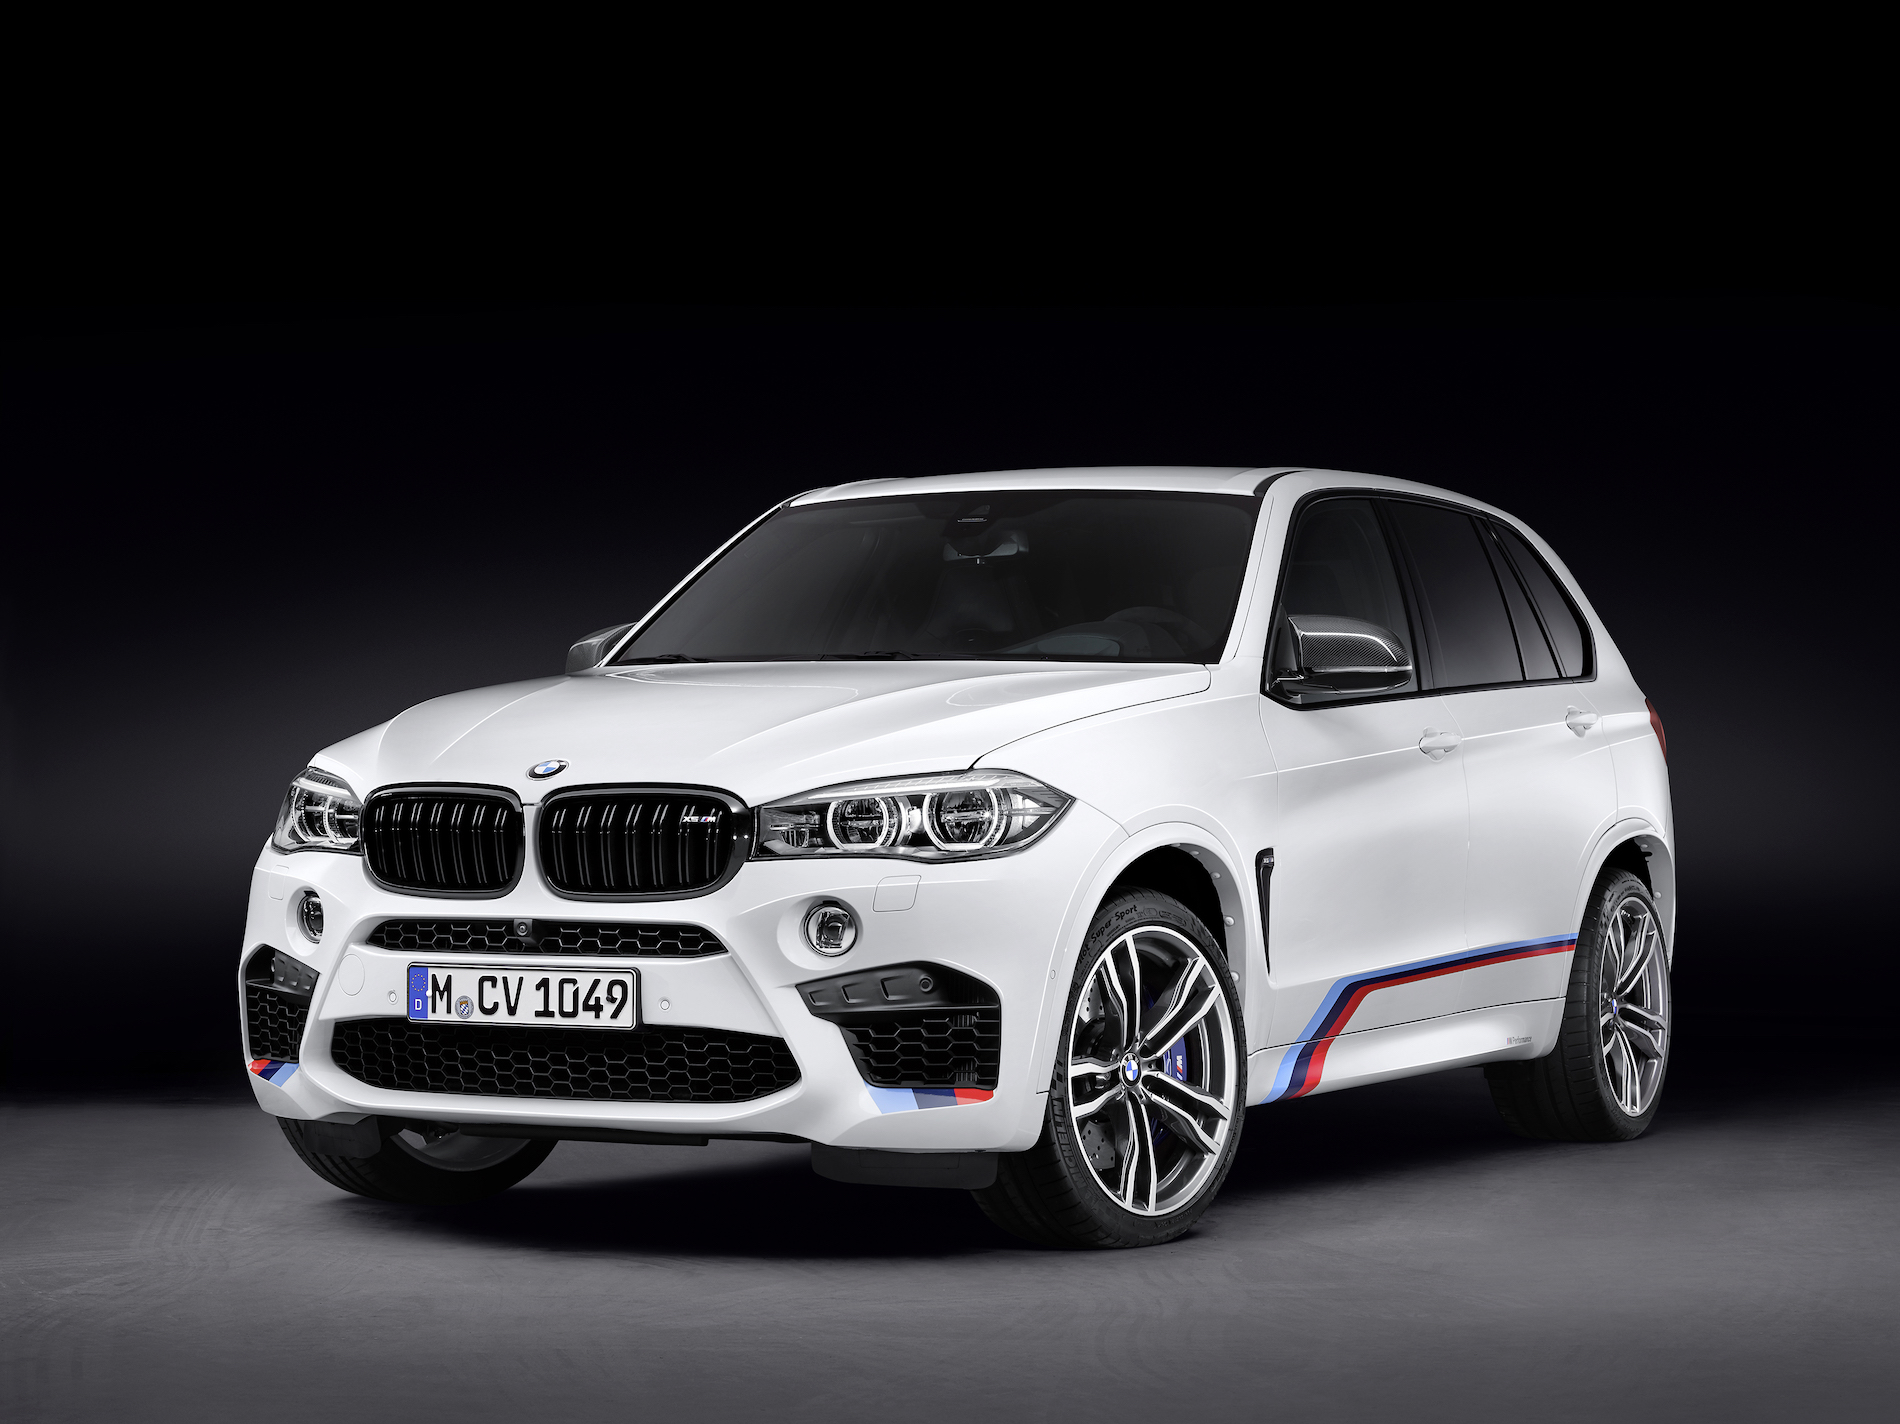 Bmw M Performance Parts For The All New Bmw X5 M And X6 M